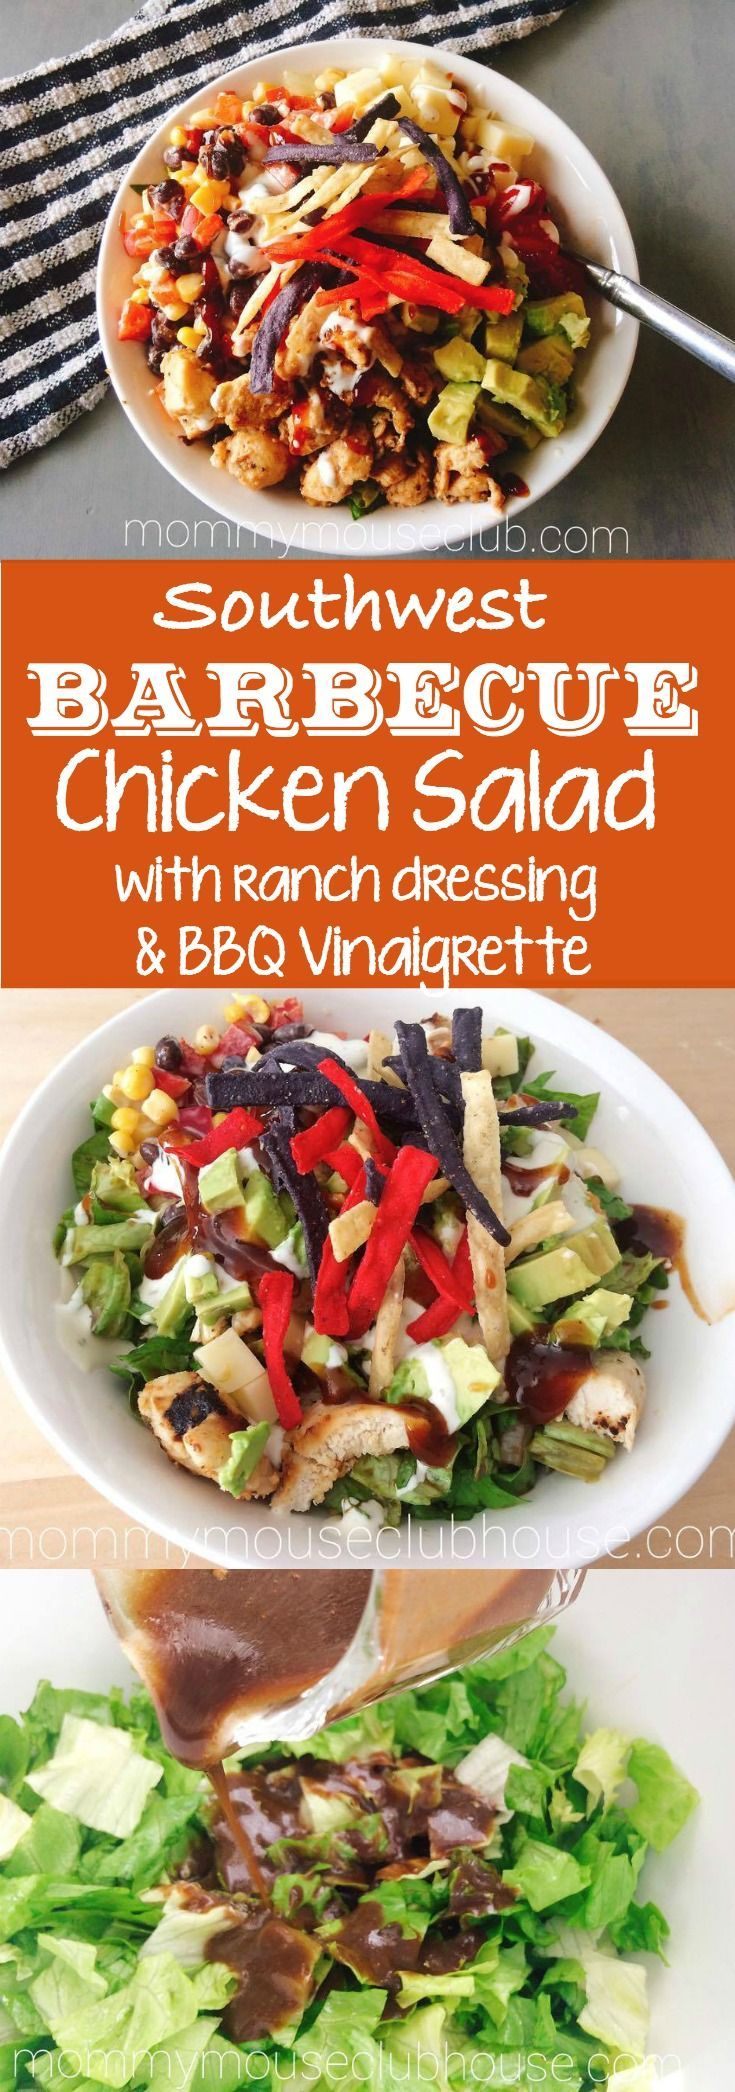 Fiesta Ranch Chicken Salad with BBQ Vinaigrette is a hearty and flavorful combination of ingredients that will guarantee this salad is one that you will make over and over again. Creamy and spicy ranch, juicy grilled chicken and fresh vegetables are all complemented by the tangy hint of BBQ sauce from the vinaigrette. Enjoy!